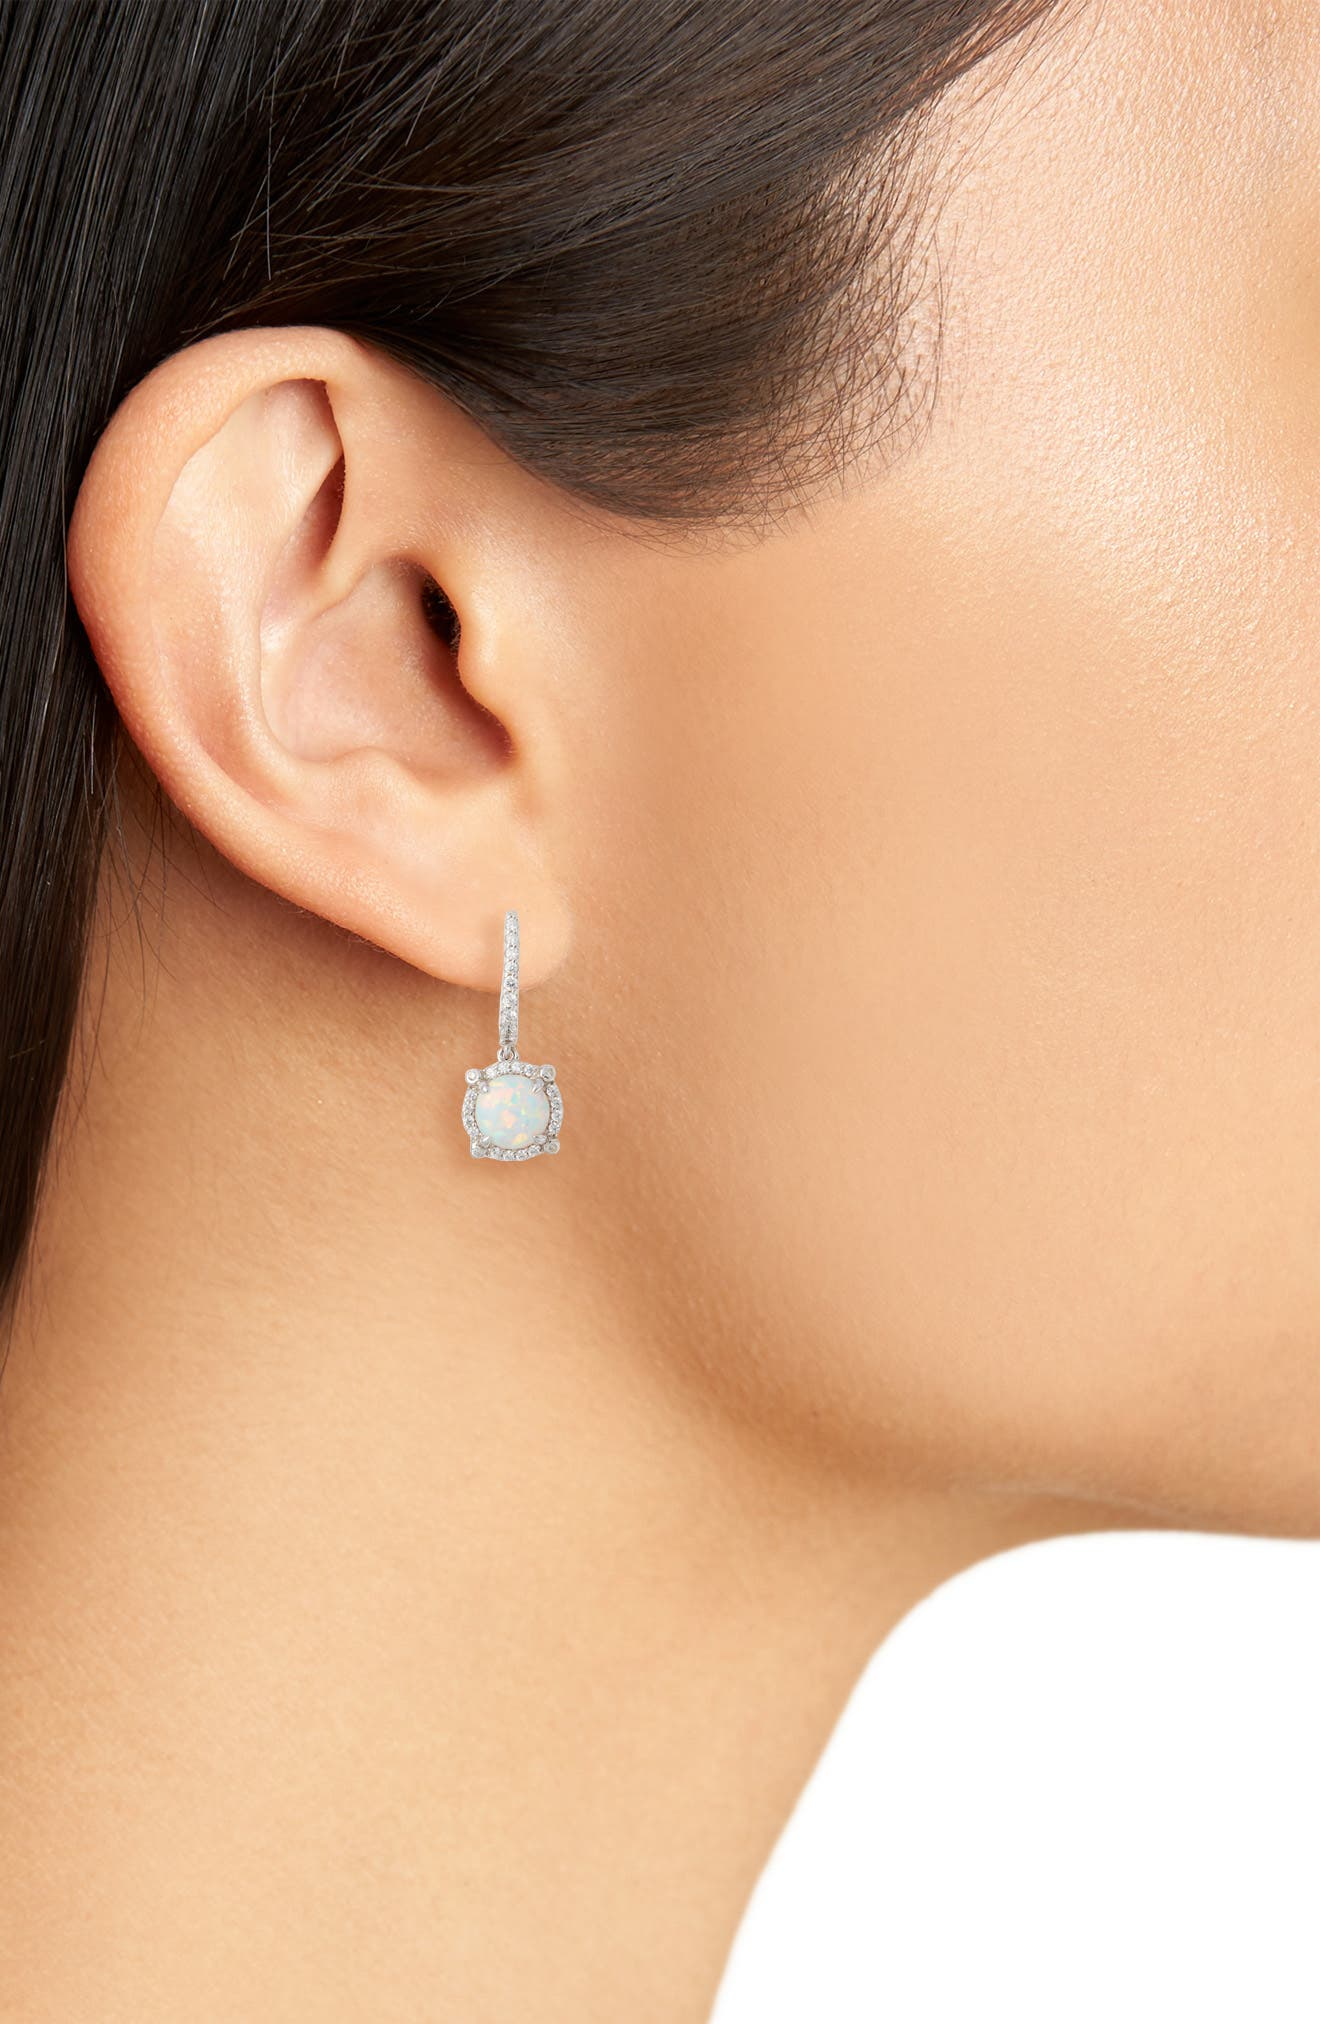 Simulated Diamond Drop Earrings,                             Alternate thumbnail 2, color,                             Silver/ Opal/ Clear